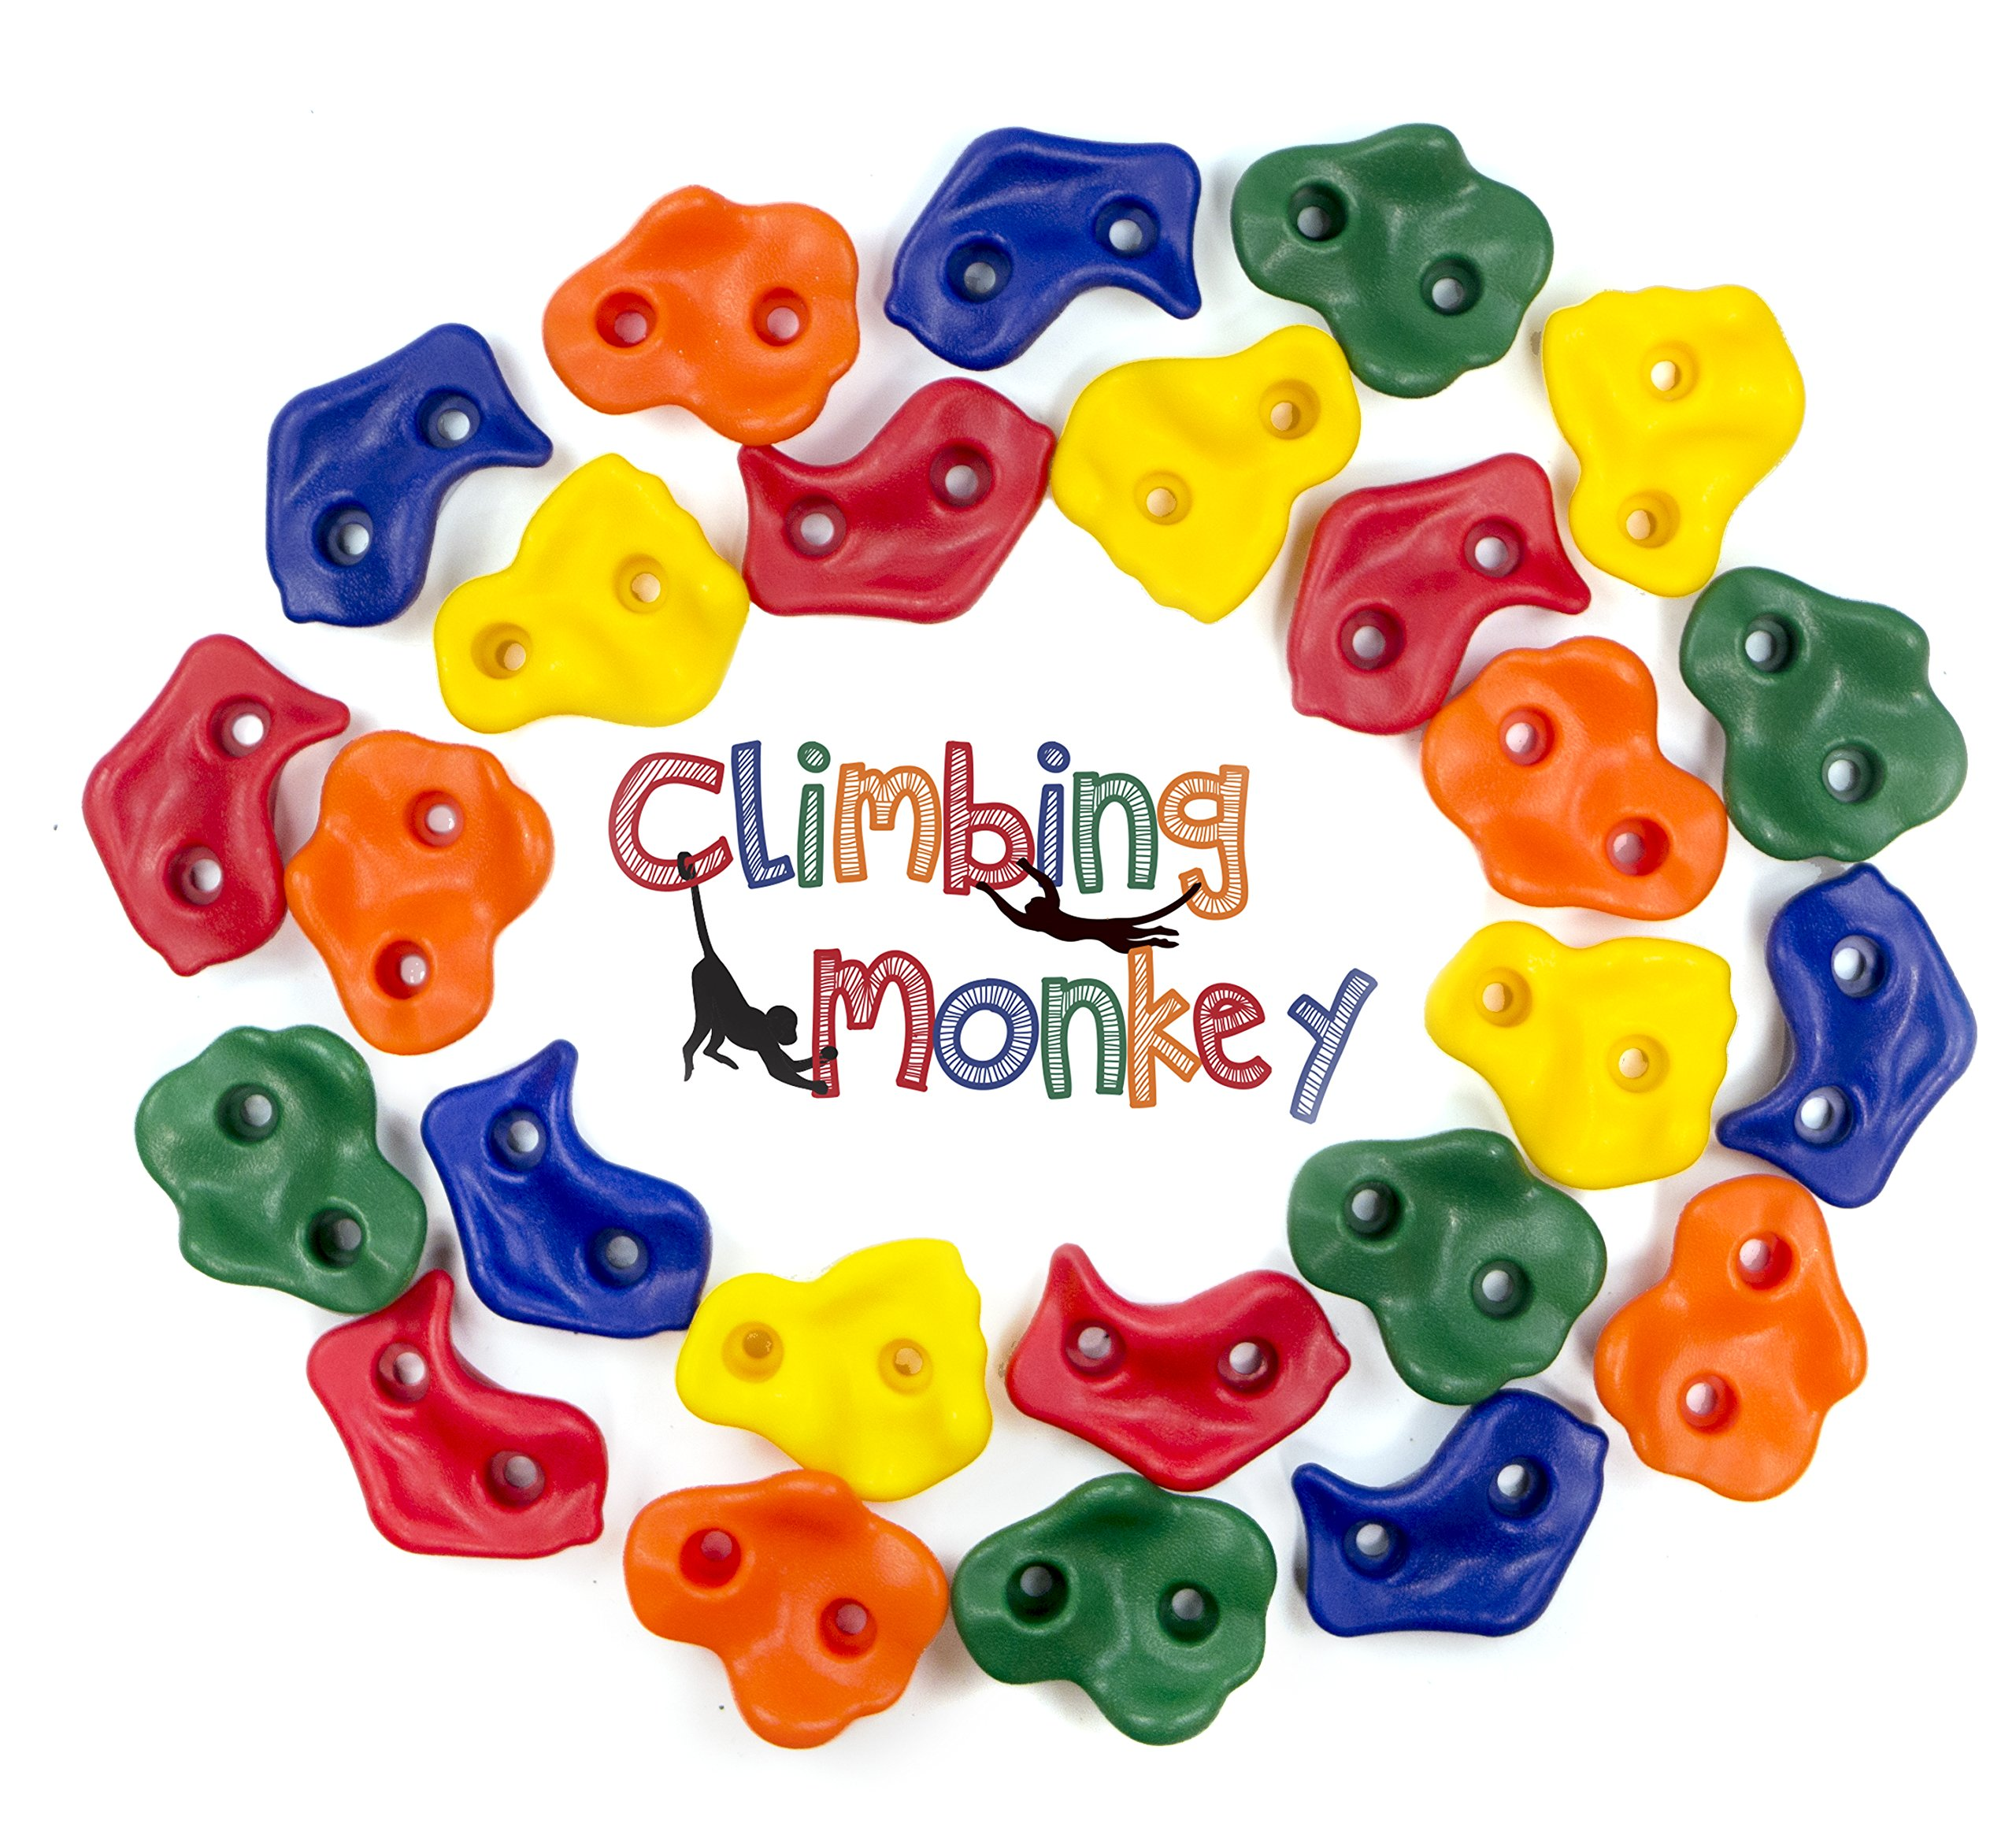 Climbing Monkey Climbing Holds -- 25 Rock Climbing Holds - Premium HD Mounting Hardware Included -- Climbing Rocks for DIY Rock Climbing Wall